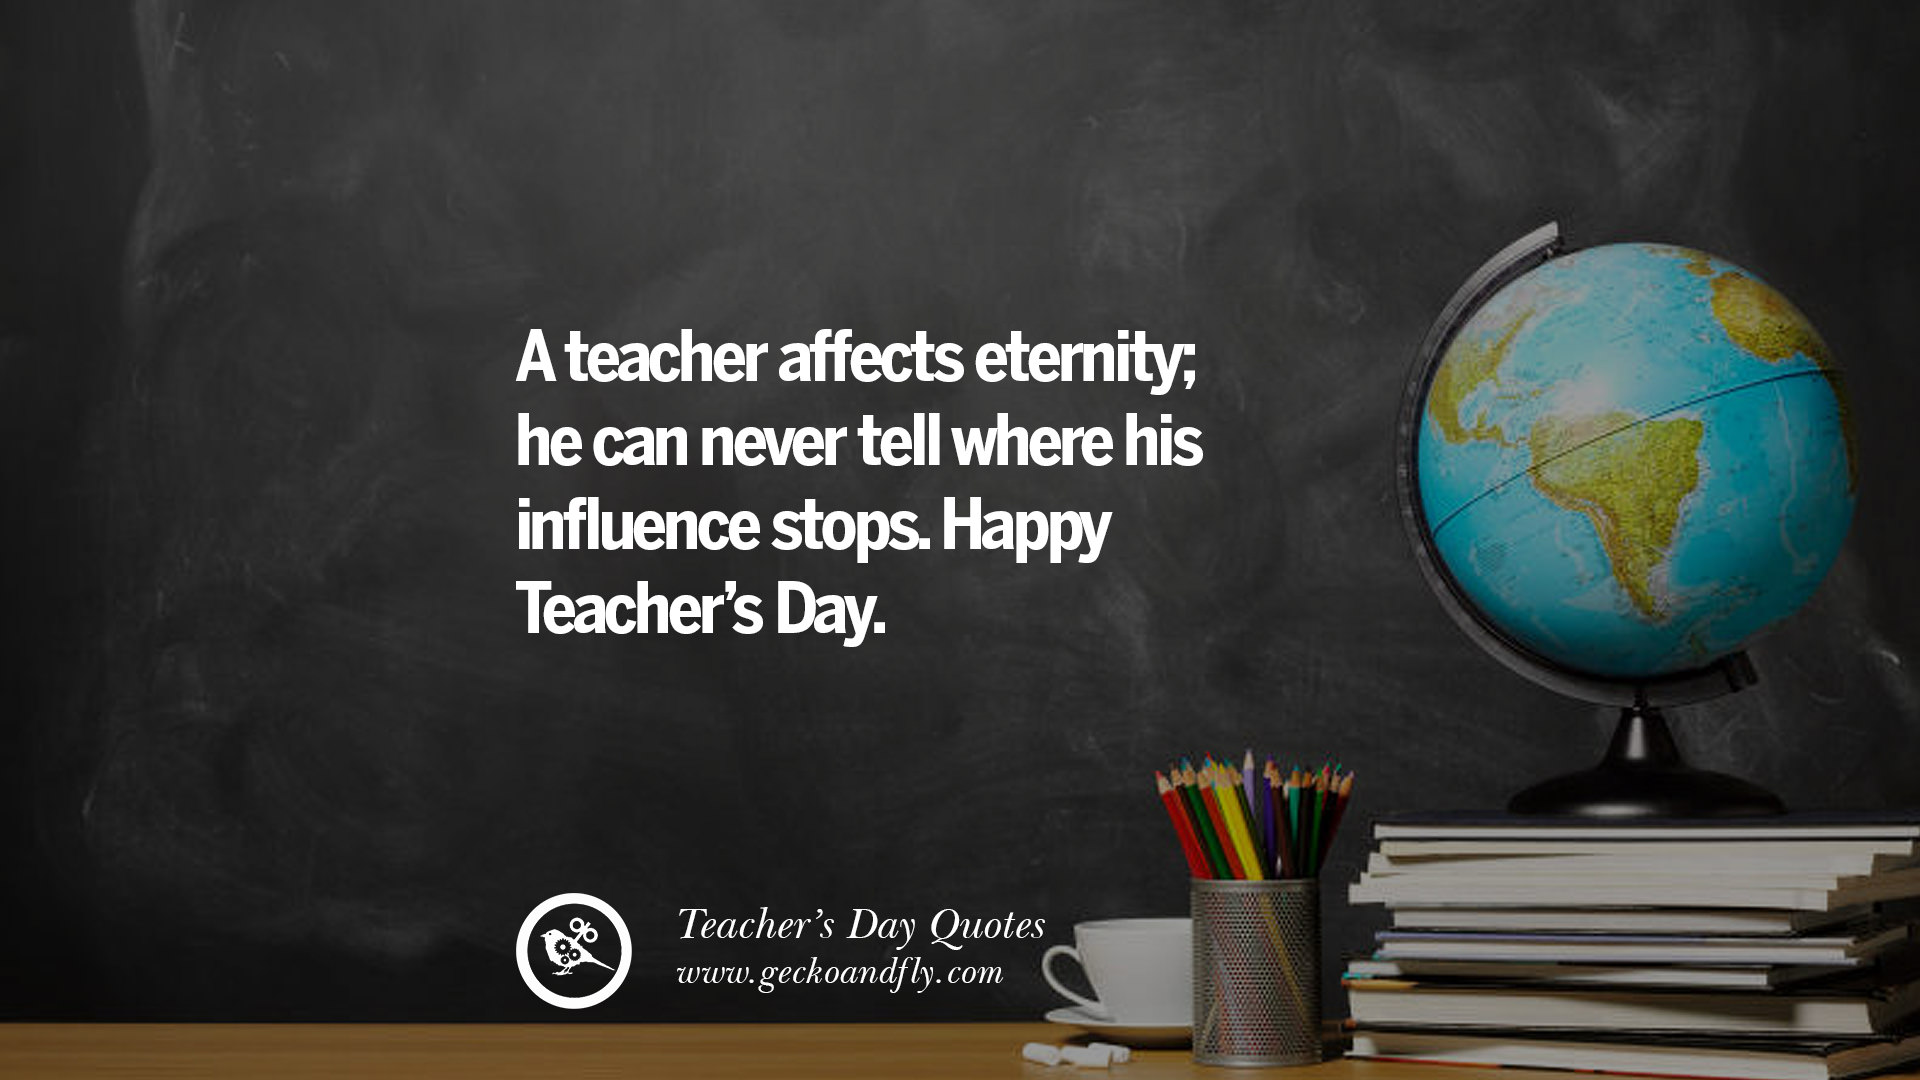 30 Happy Teachers' Day Quotes & Card Messages